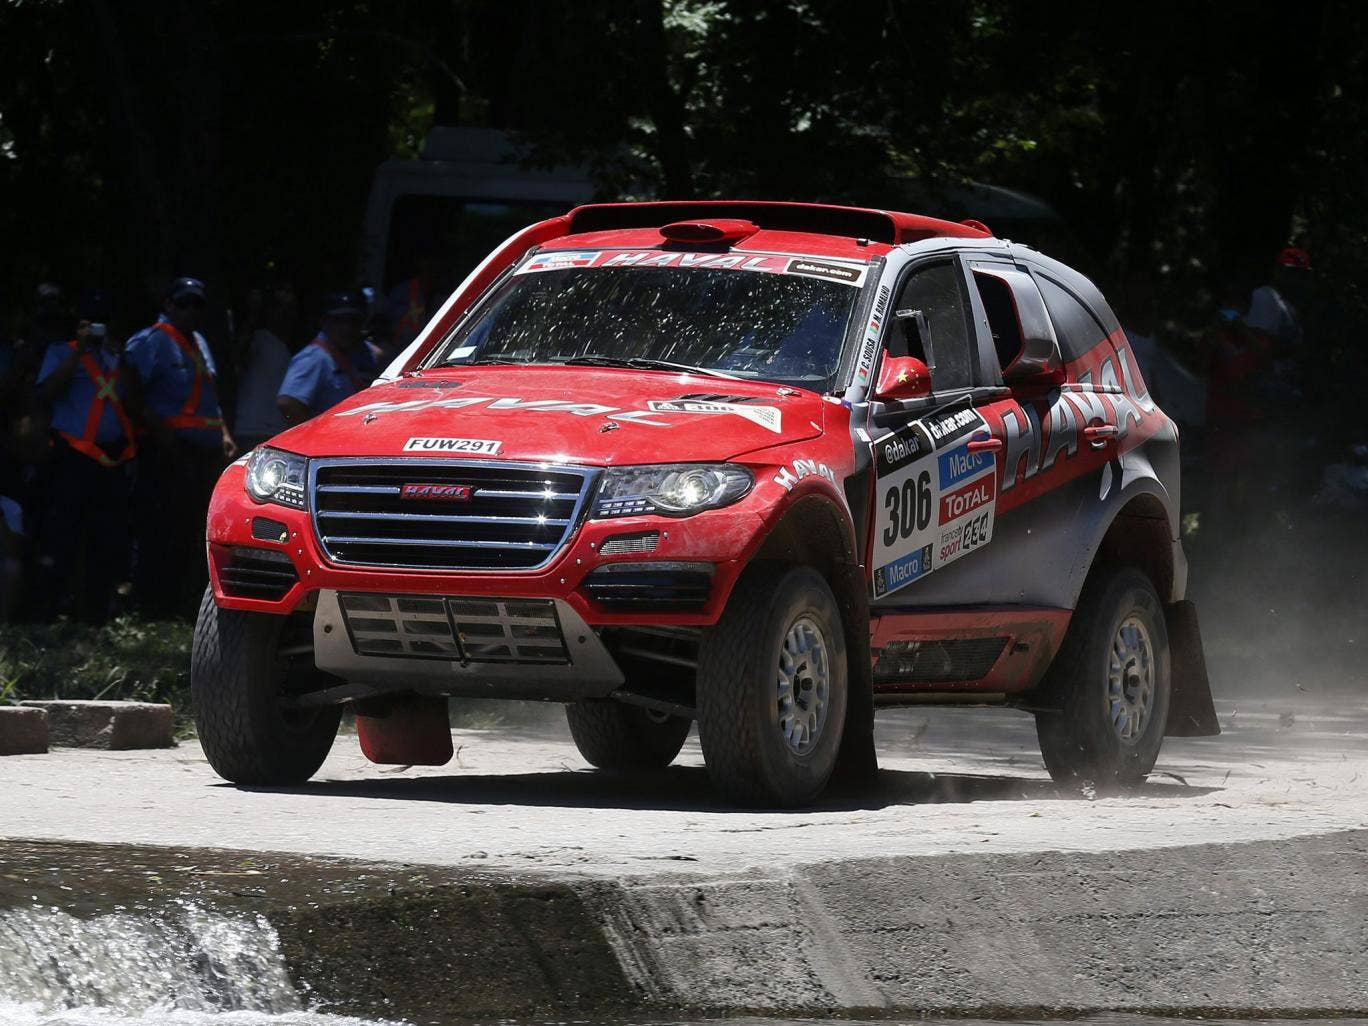 Portuguese driver Carlos Sousa in action during the first stage of the Rally Dakar 2014